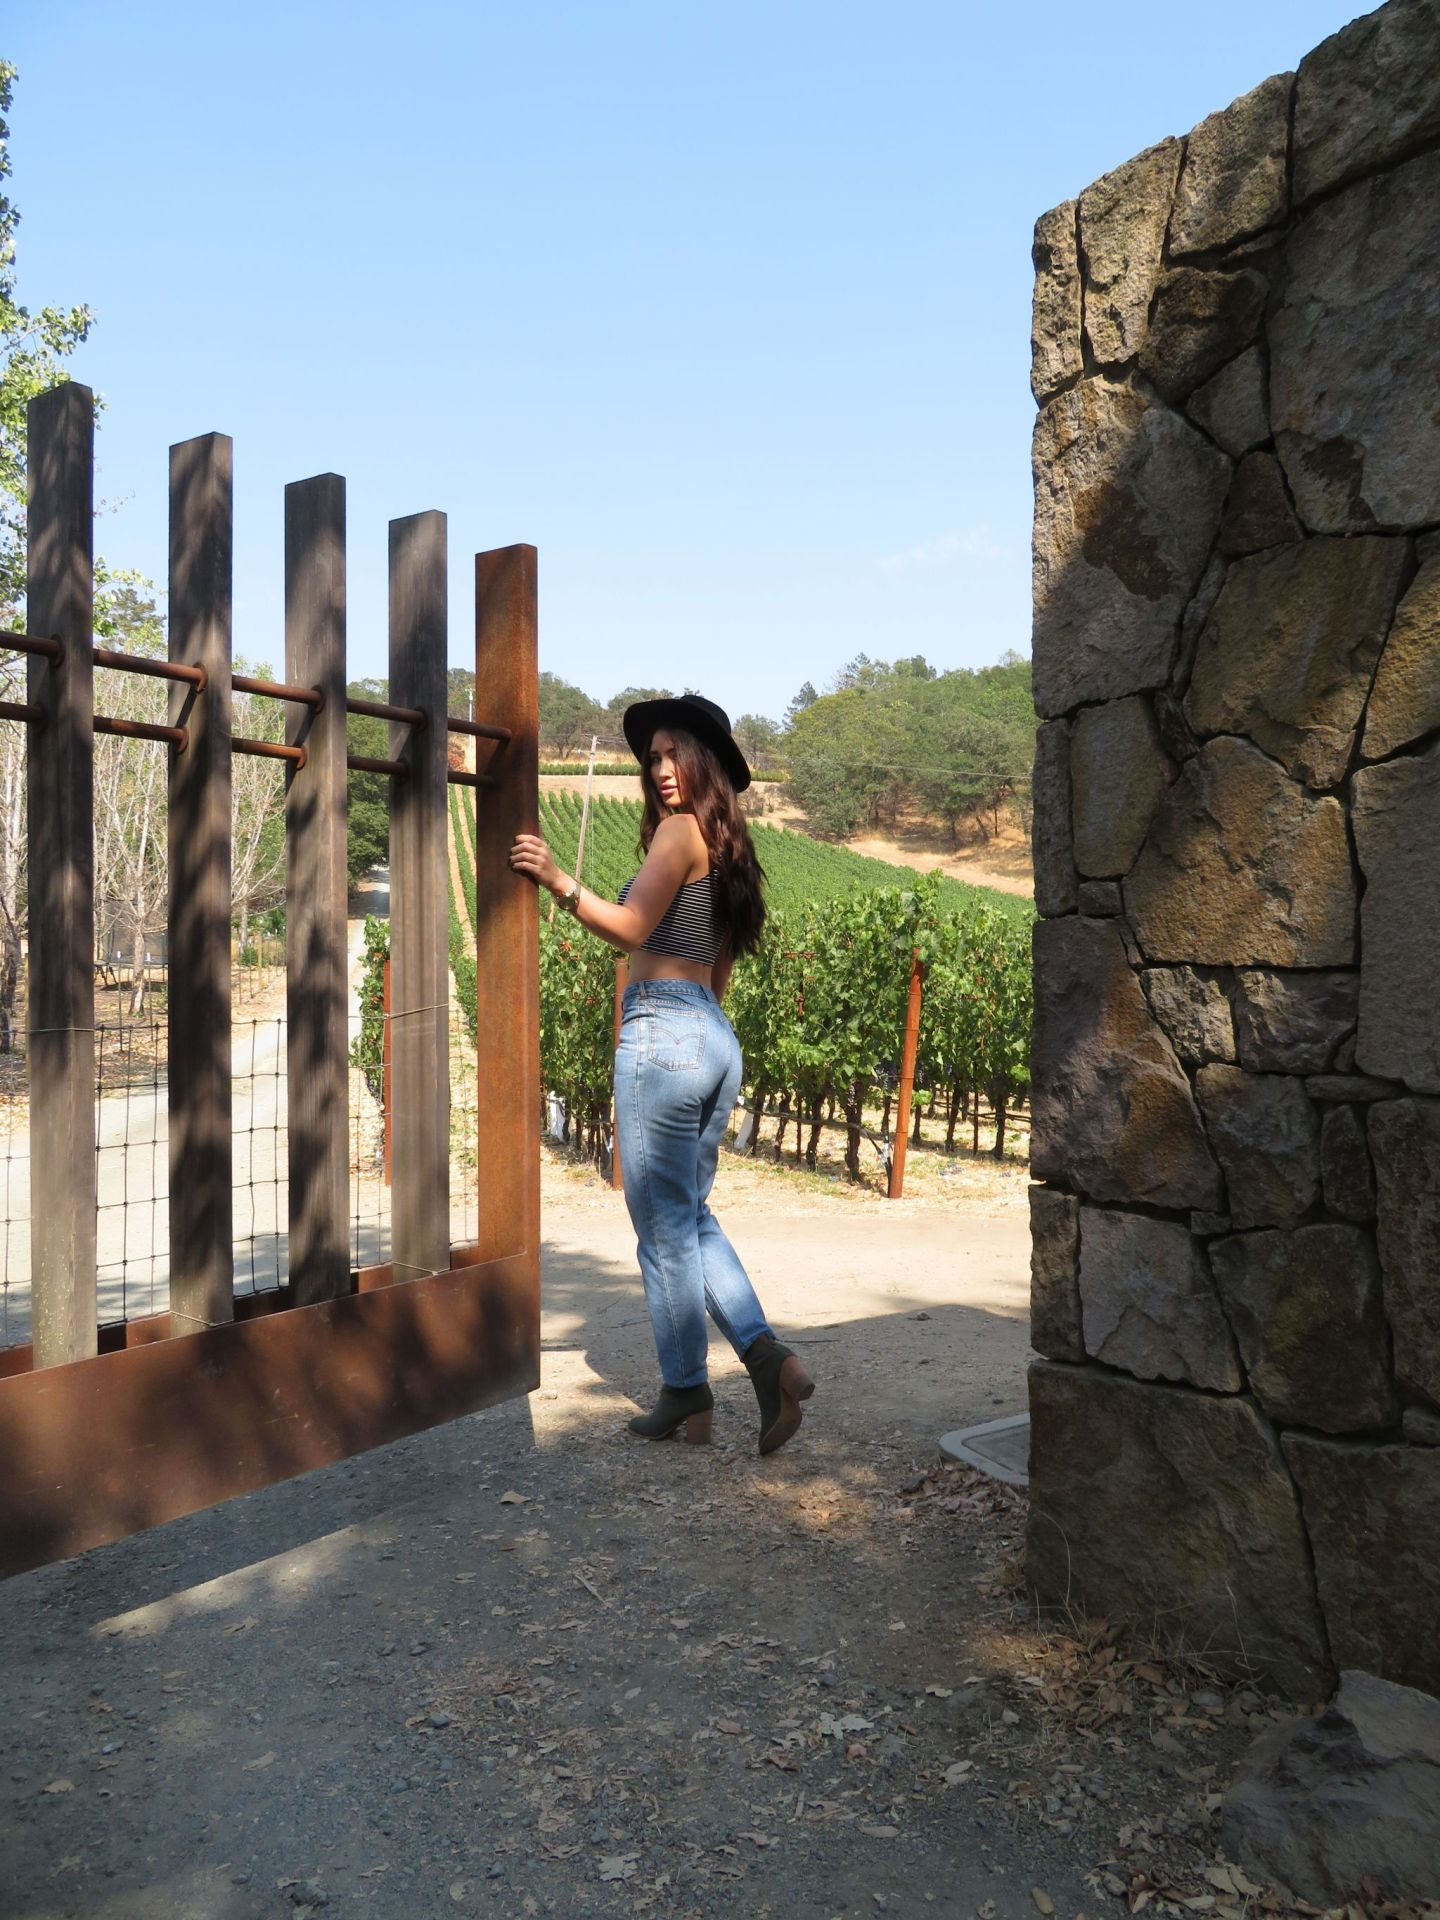 72 Hours In Wine Country